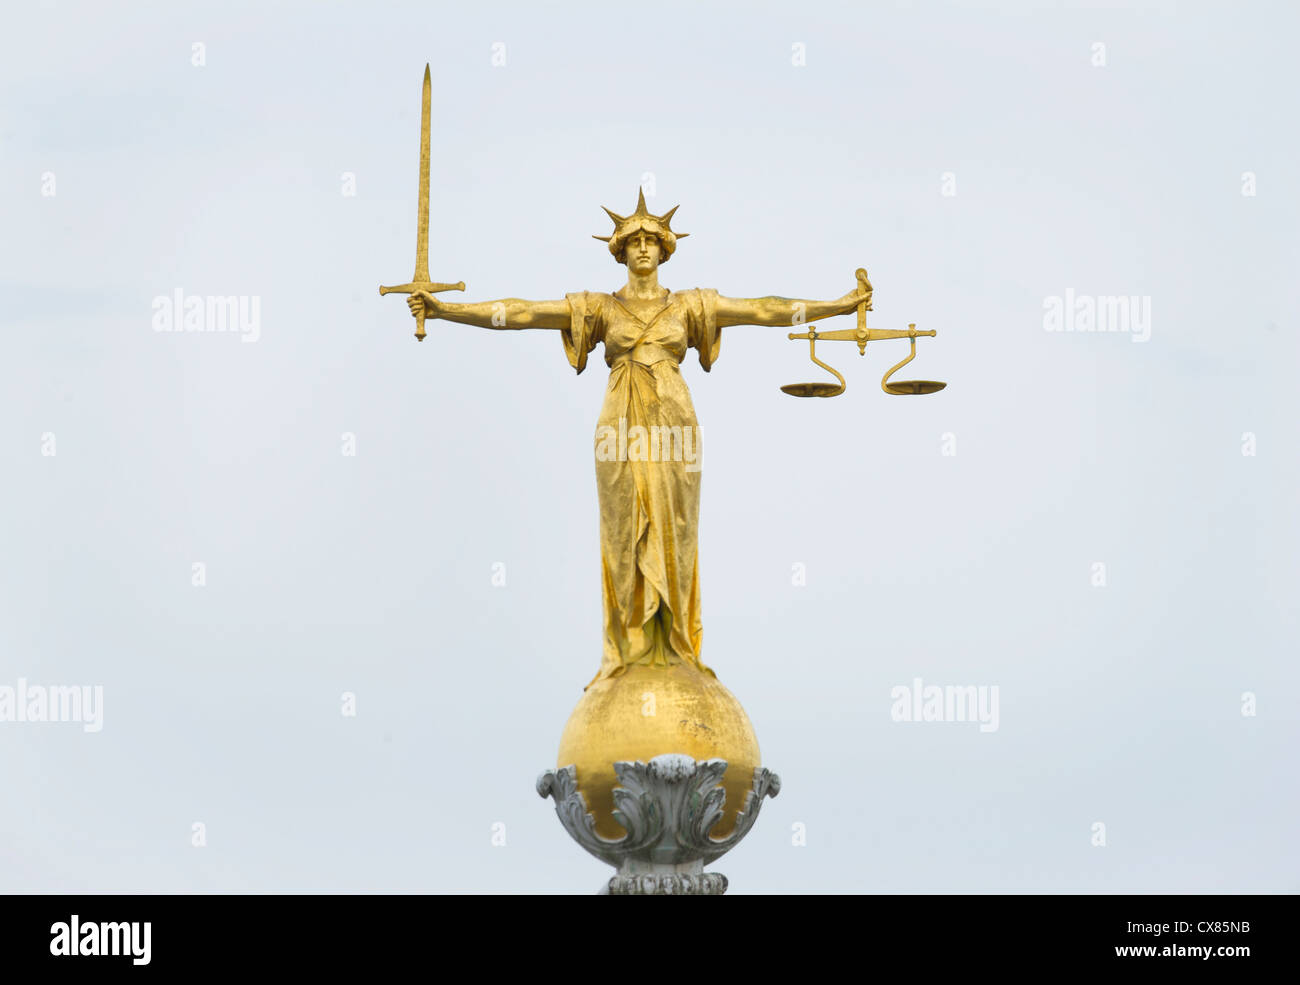 The gold bronze Lady Justice statue with sword and scales above the Central Criminal Court, Old Bailey, London - Stock Image